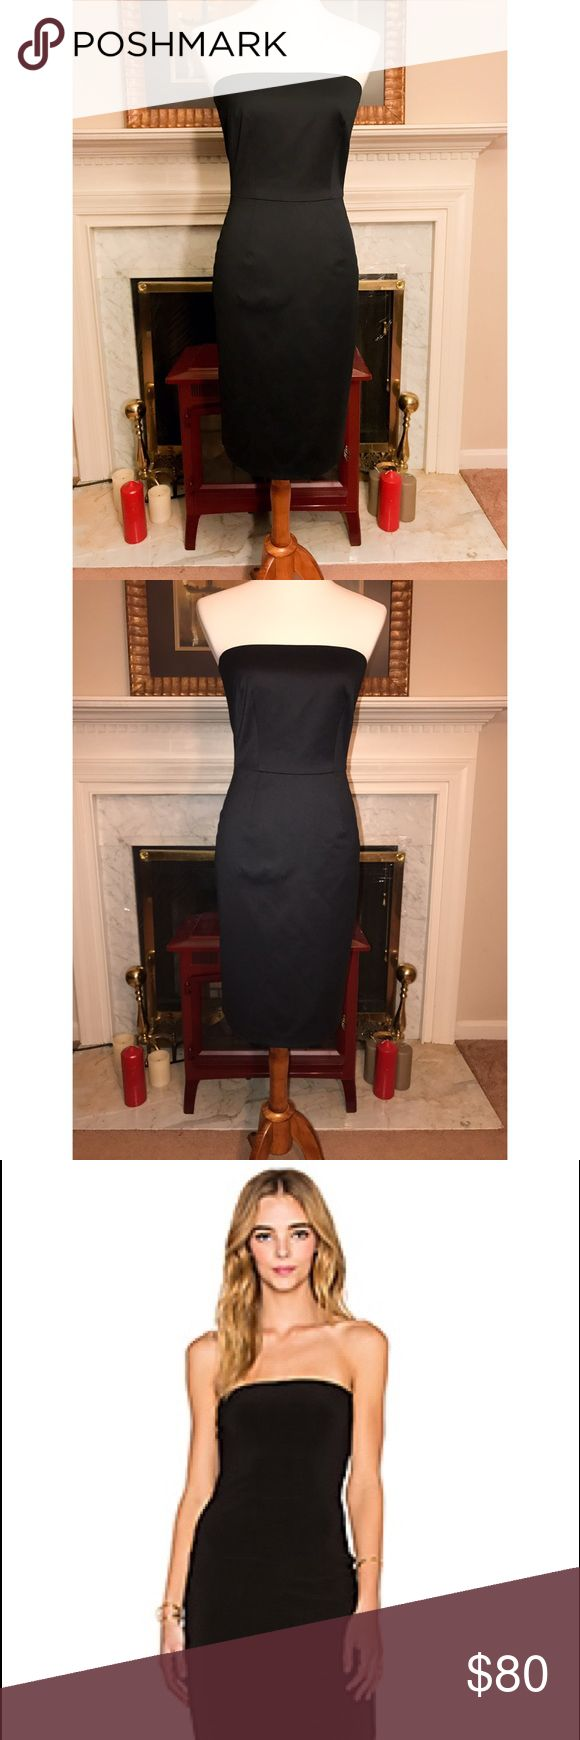 Trina Turk Strapless LBD timeless/priceless Sz 4🔥 Trina Turk Strapless LBD timeless/priceless Sz 4🔥. Beautiful length perfect curve hugger. Can be worn with stilettos 👠👛 or with a jean jacket for date night or GNO. Not to mention perfect for a blazer at work. It's a STAPLE piece! #trinaturk #lbddress #girlmeetsthrift #shopmycloset Trina Turk Dresses